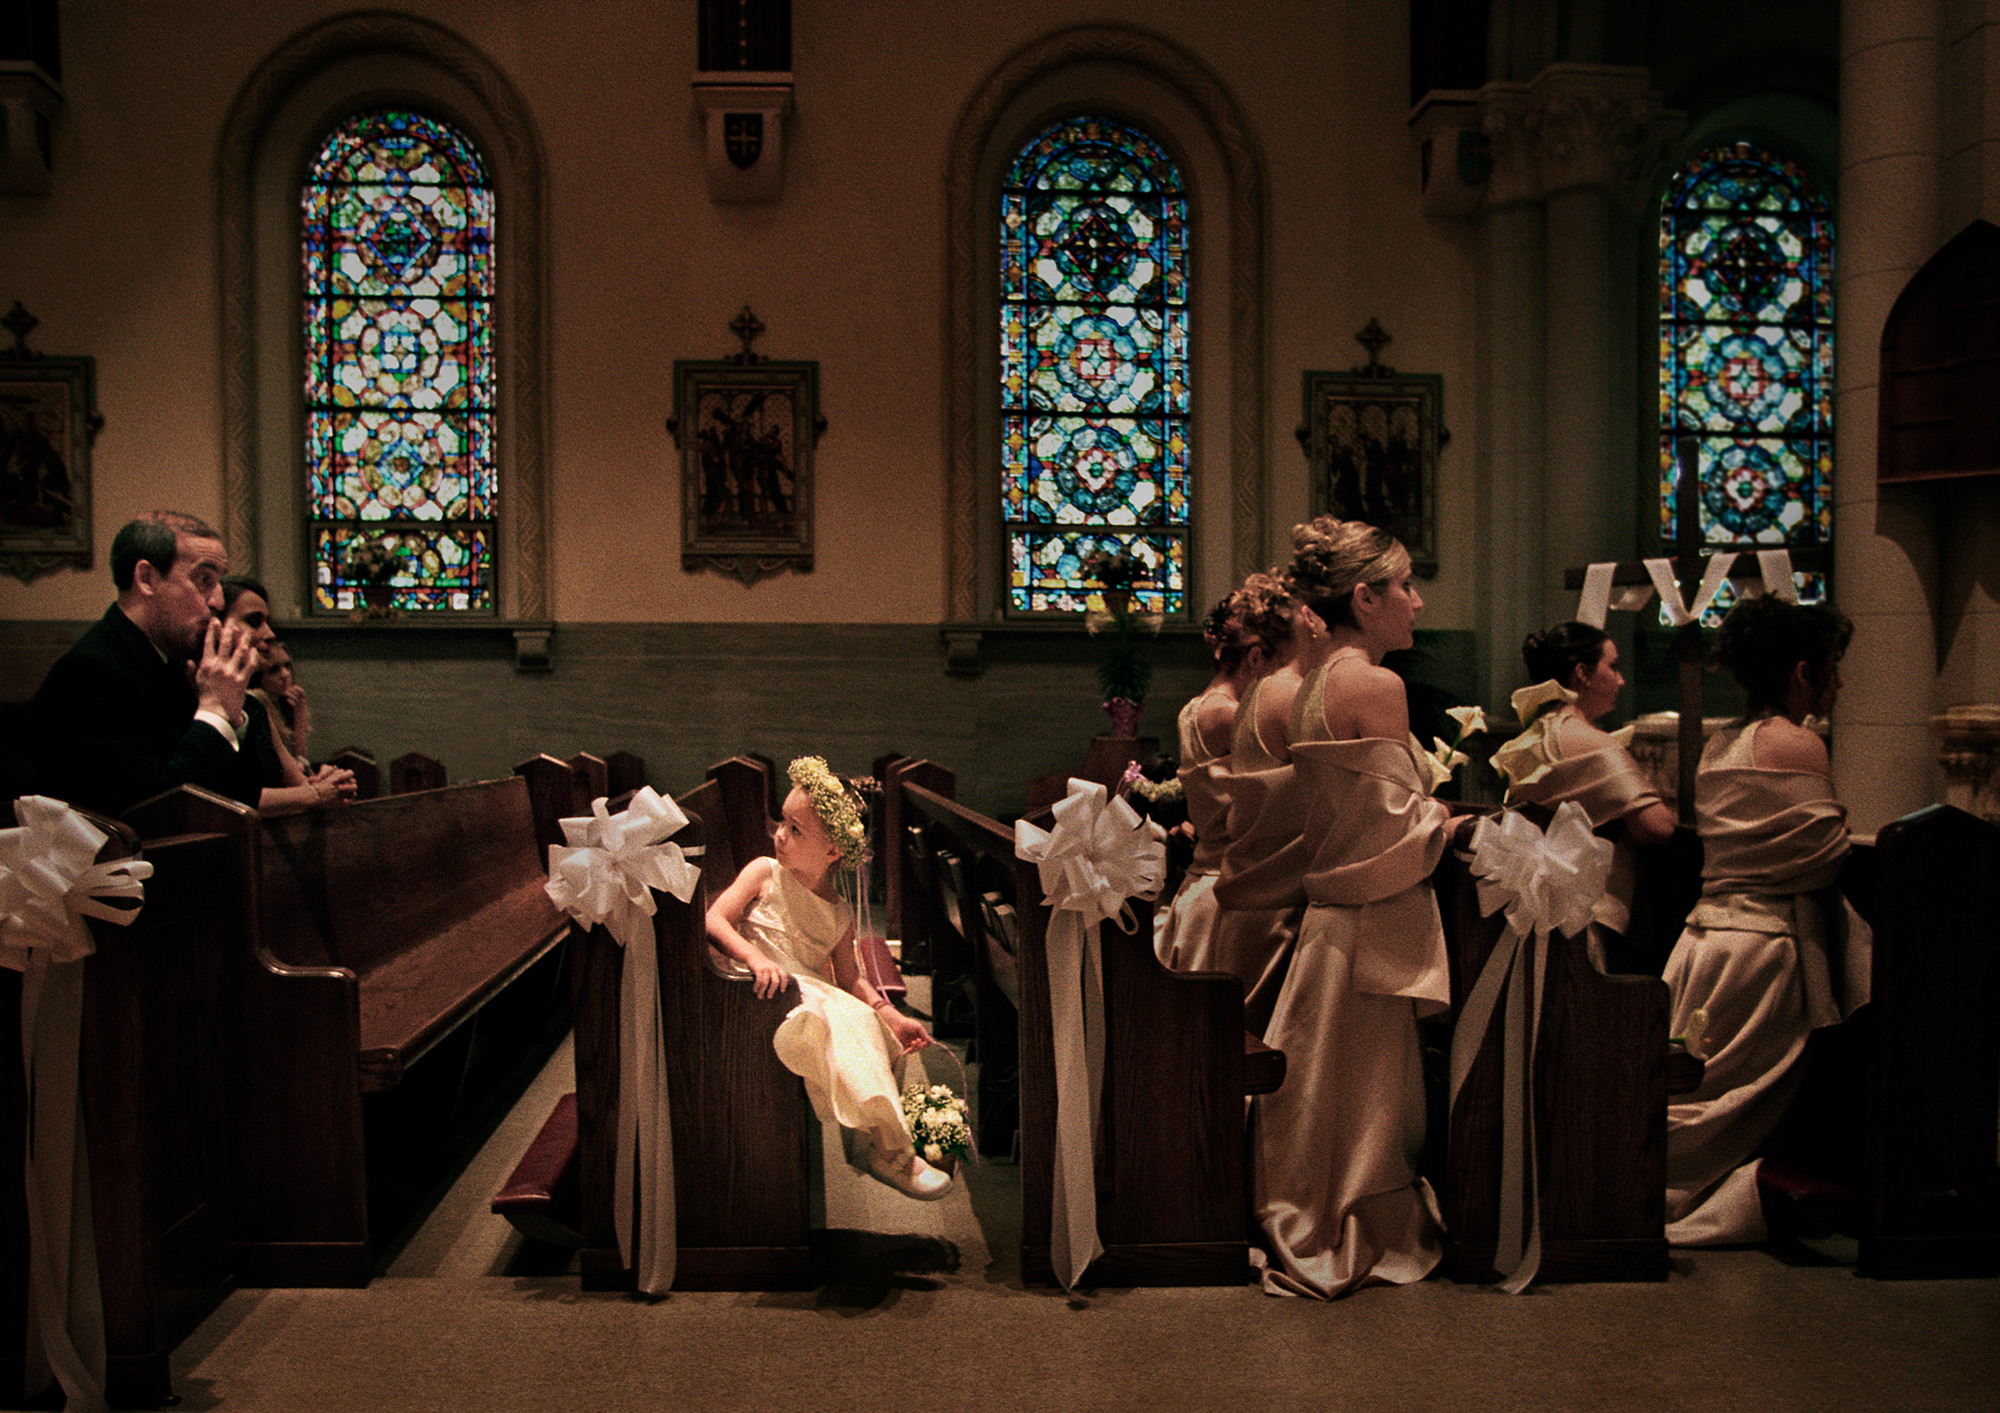 Parent shushing flower girl at church wedding photo by Cliff Mautner